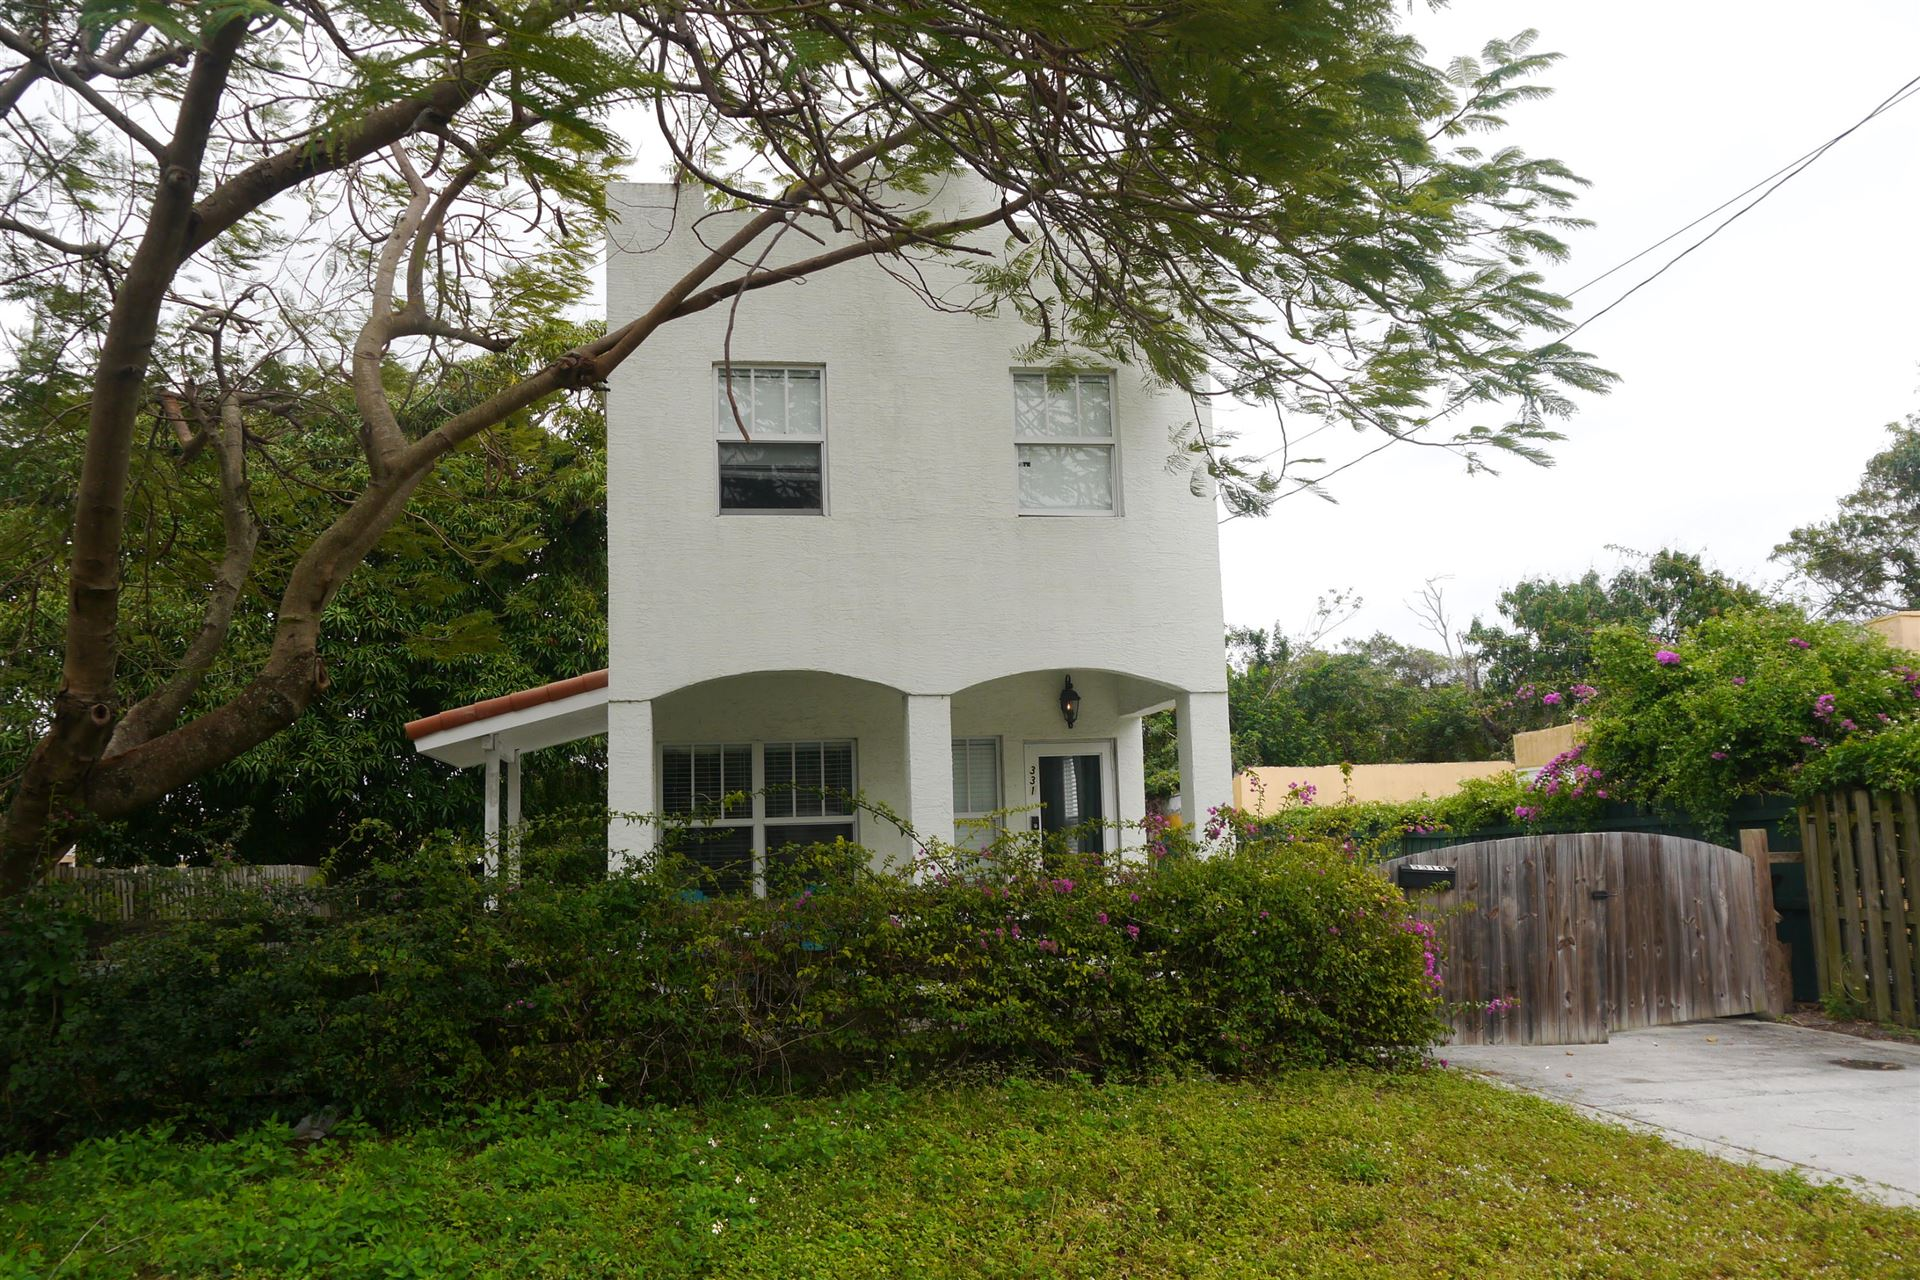 3310 Greenwood Avenue, West Palm Beach, FL 33407 - #: RX-10603141